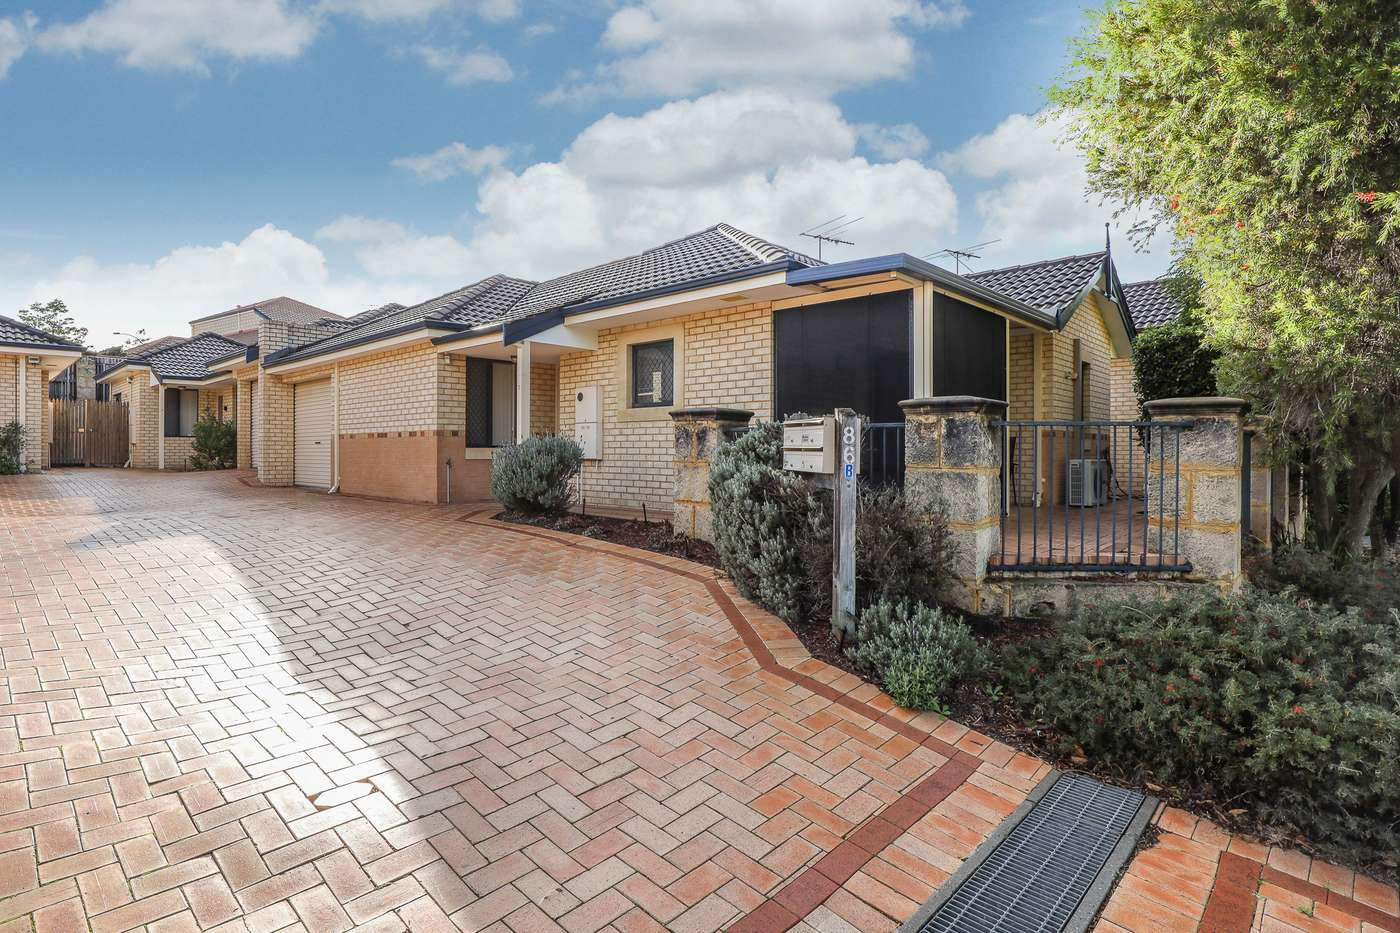 Main view of Homely unit listing, 7/86 ELLERSDALE AVE, Warwick, WA 6024